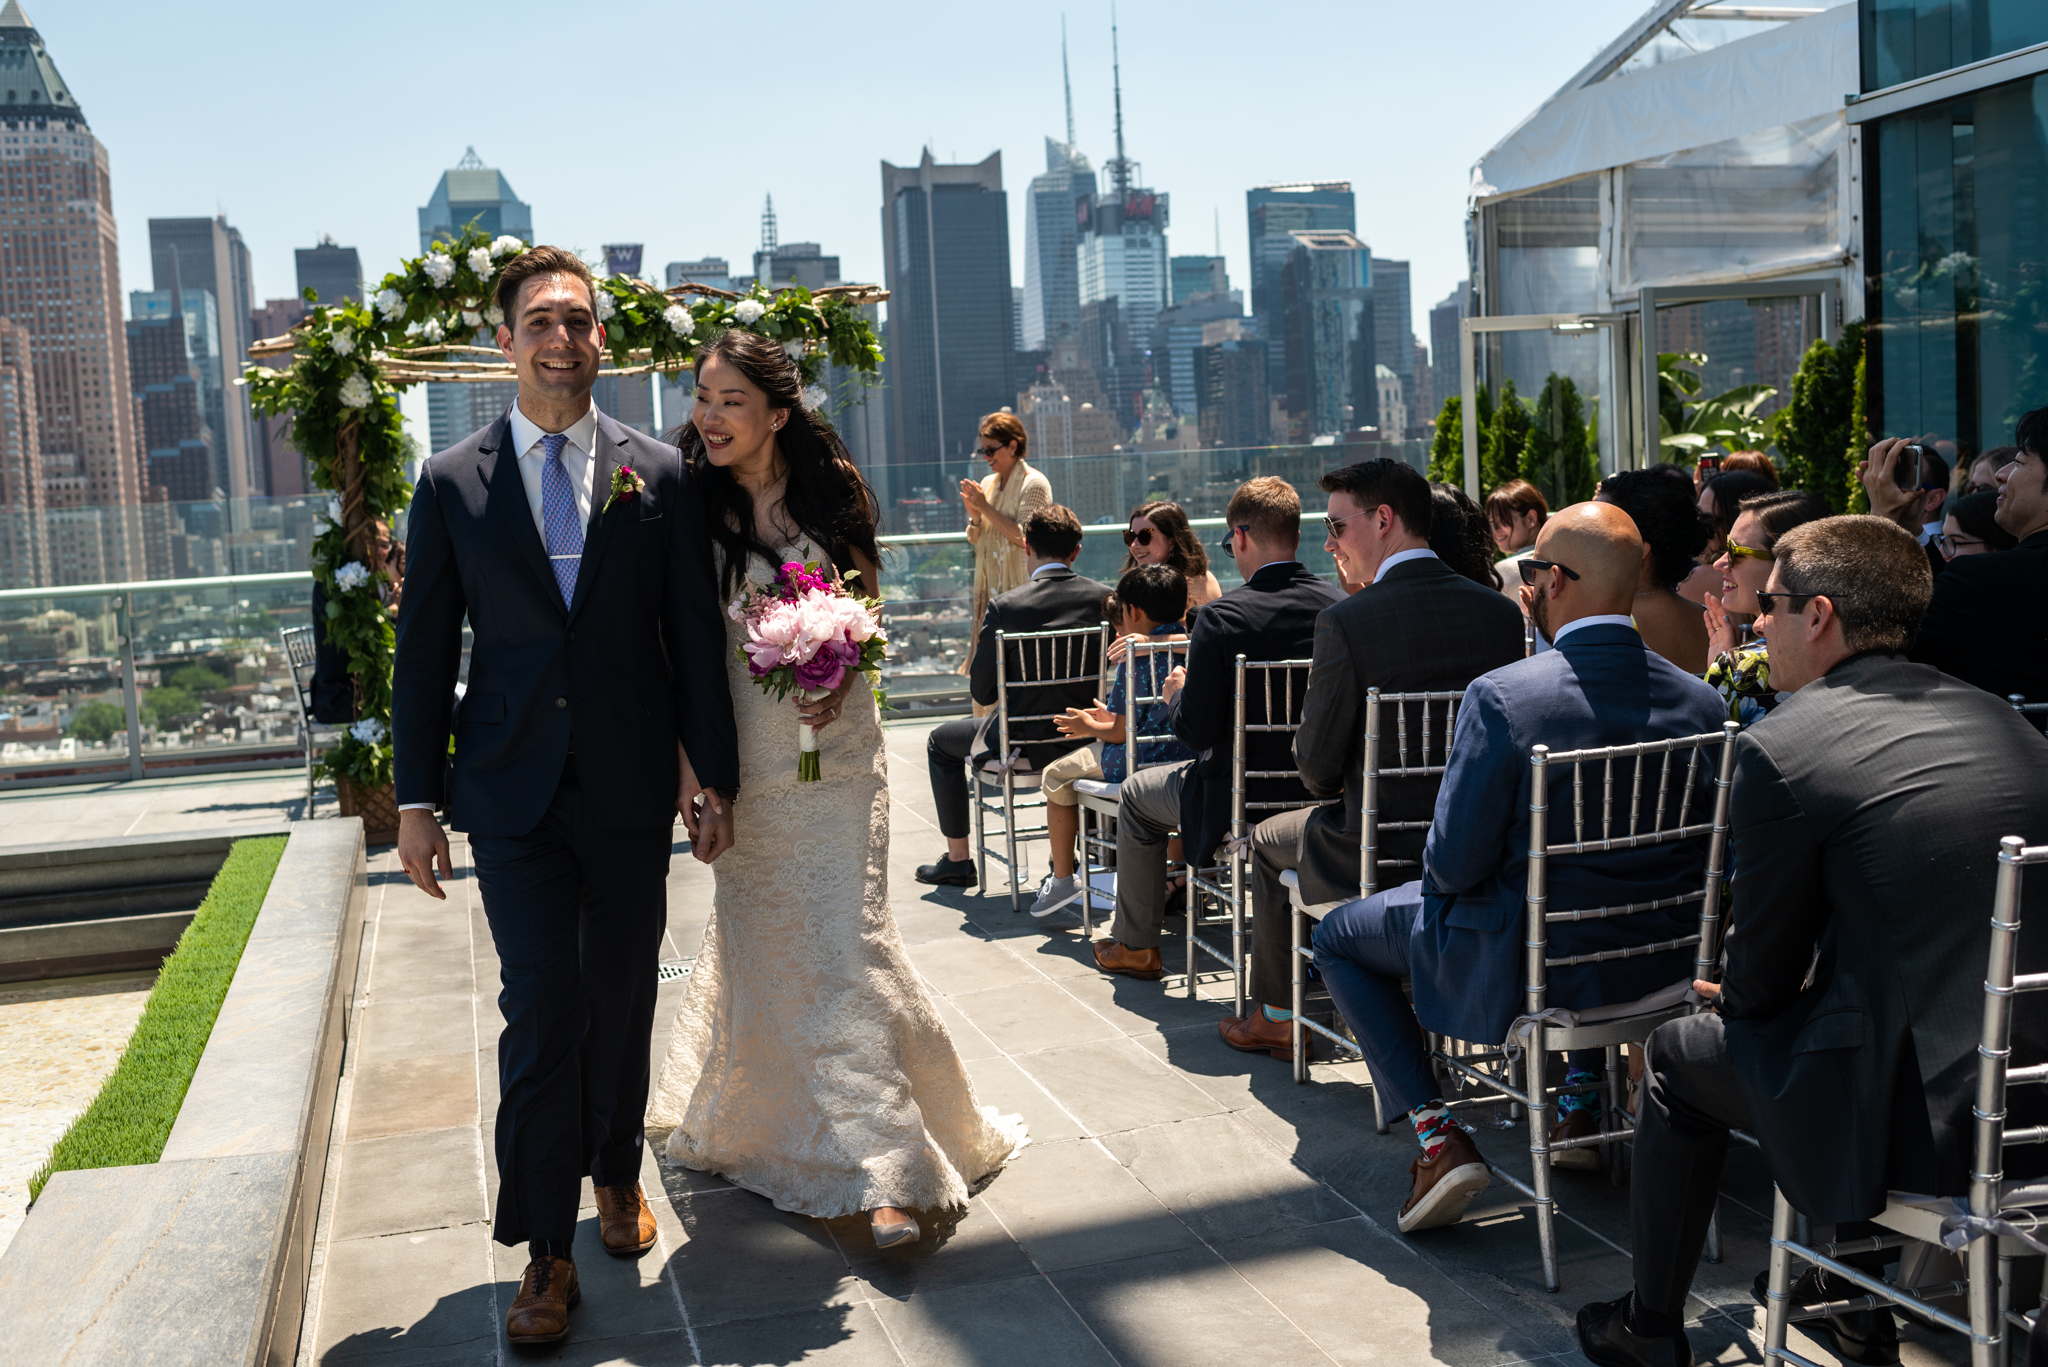 Saki & Zach's Wedding by Romina Hendlin-010.jpg